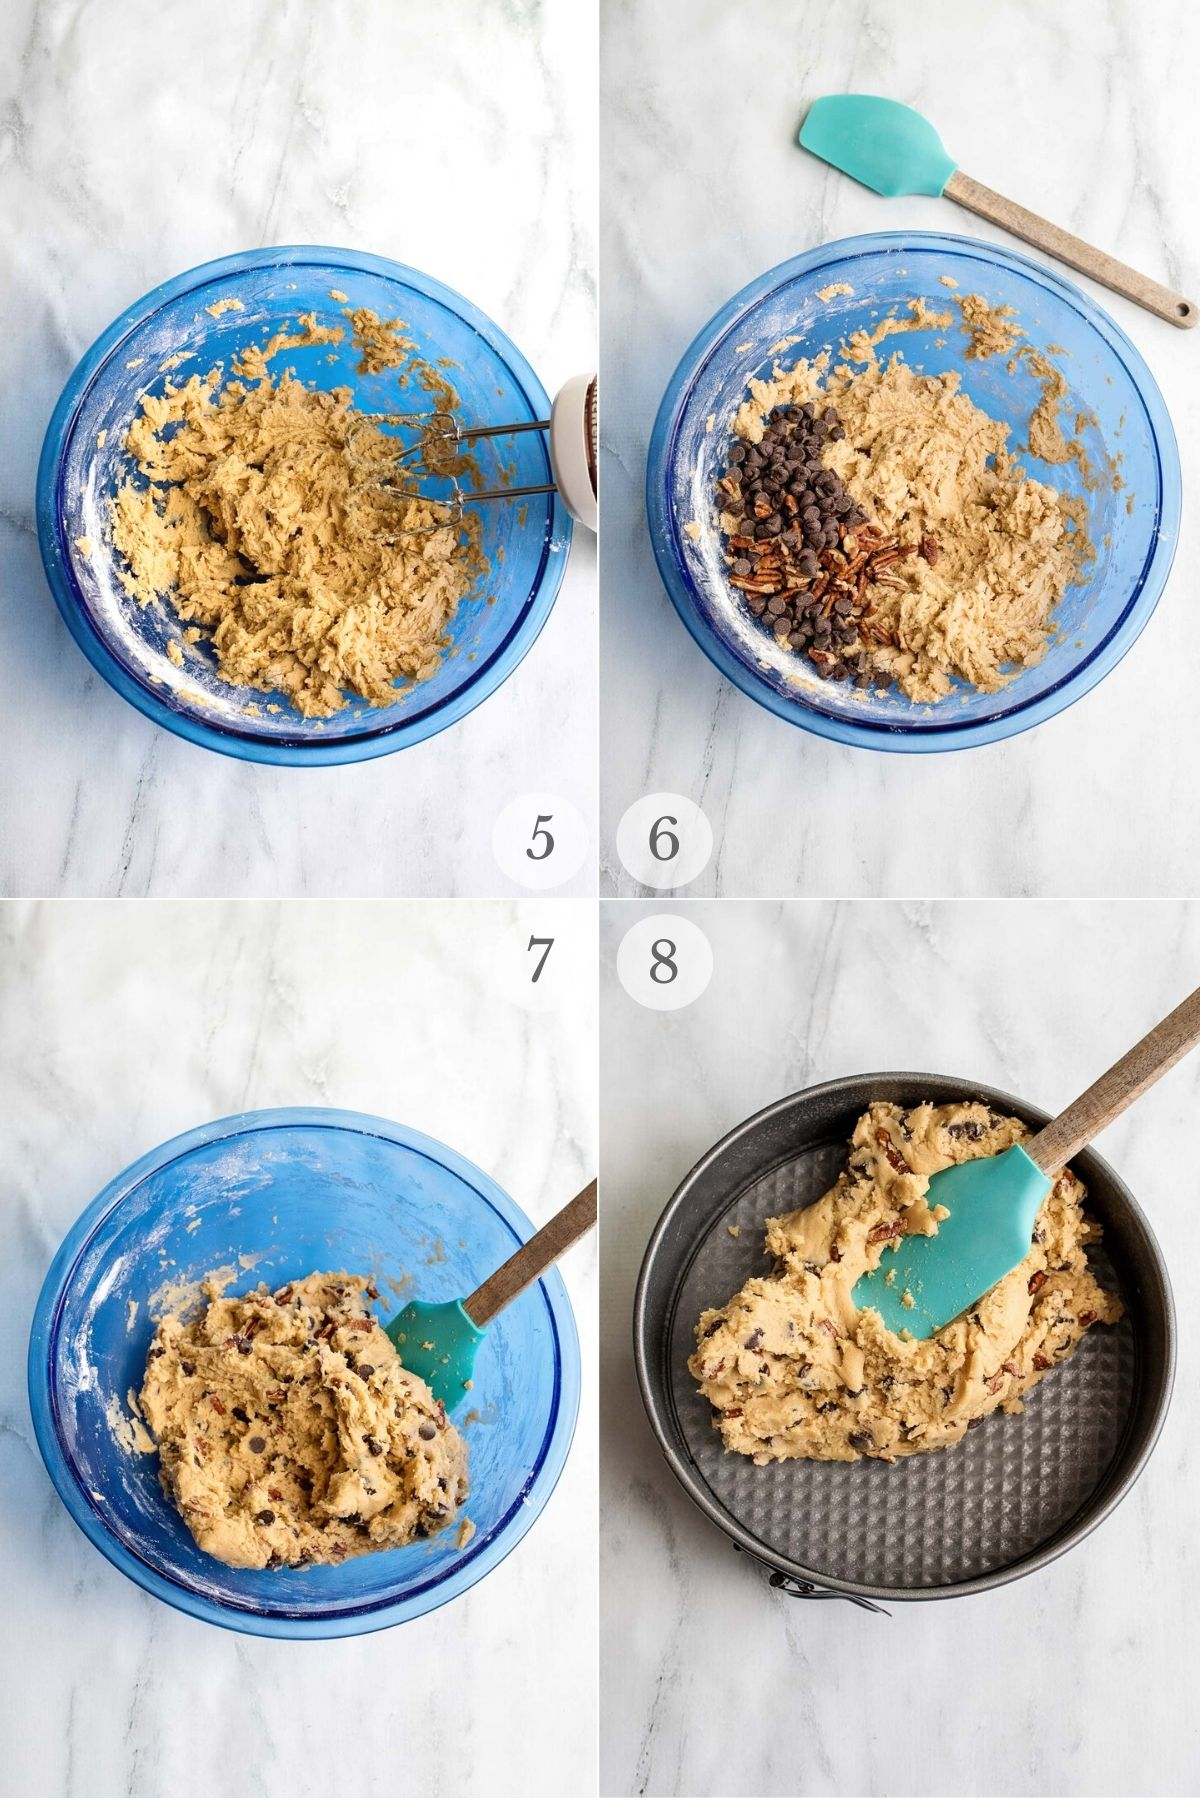 Cookie cake recipe steps collage 5-8